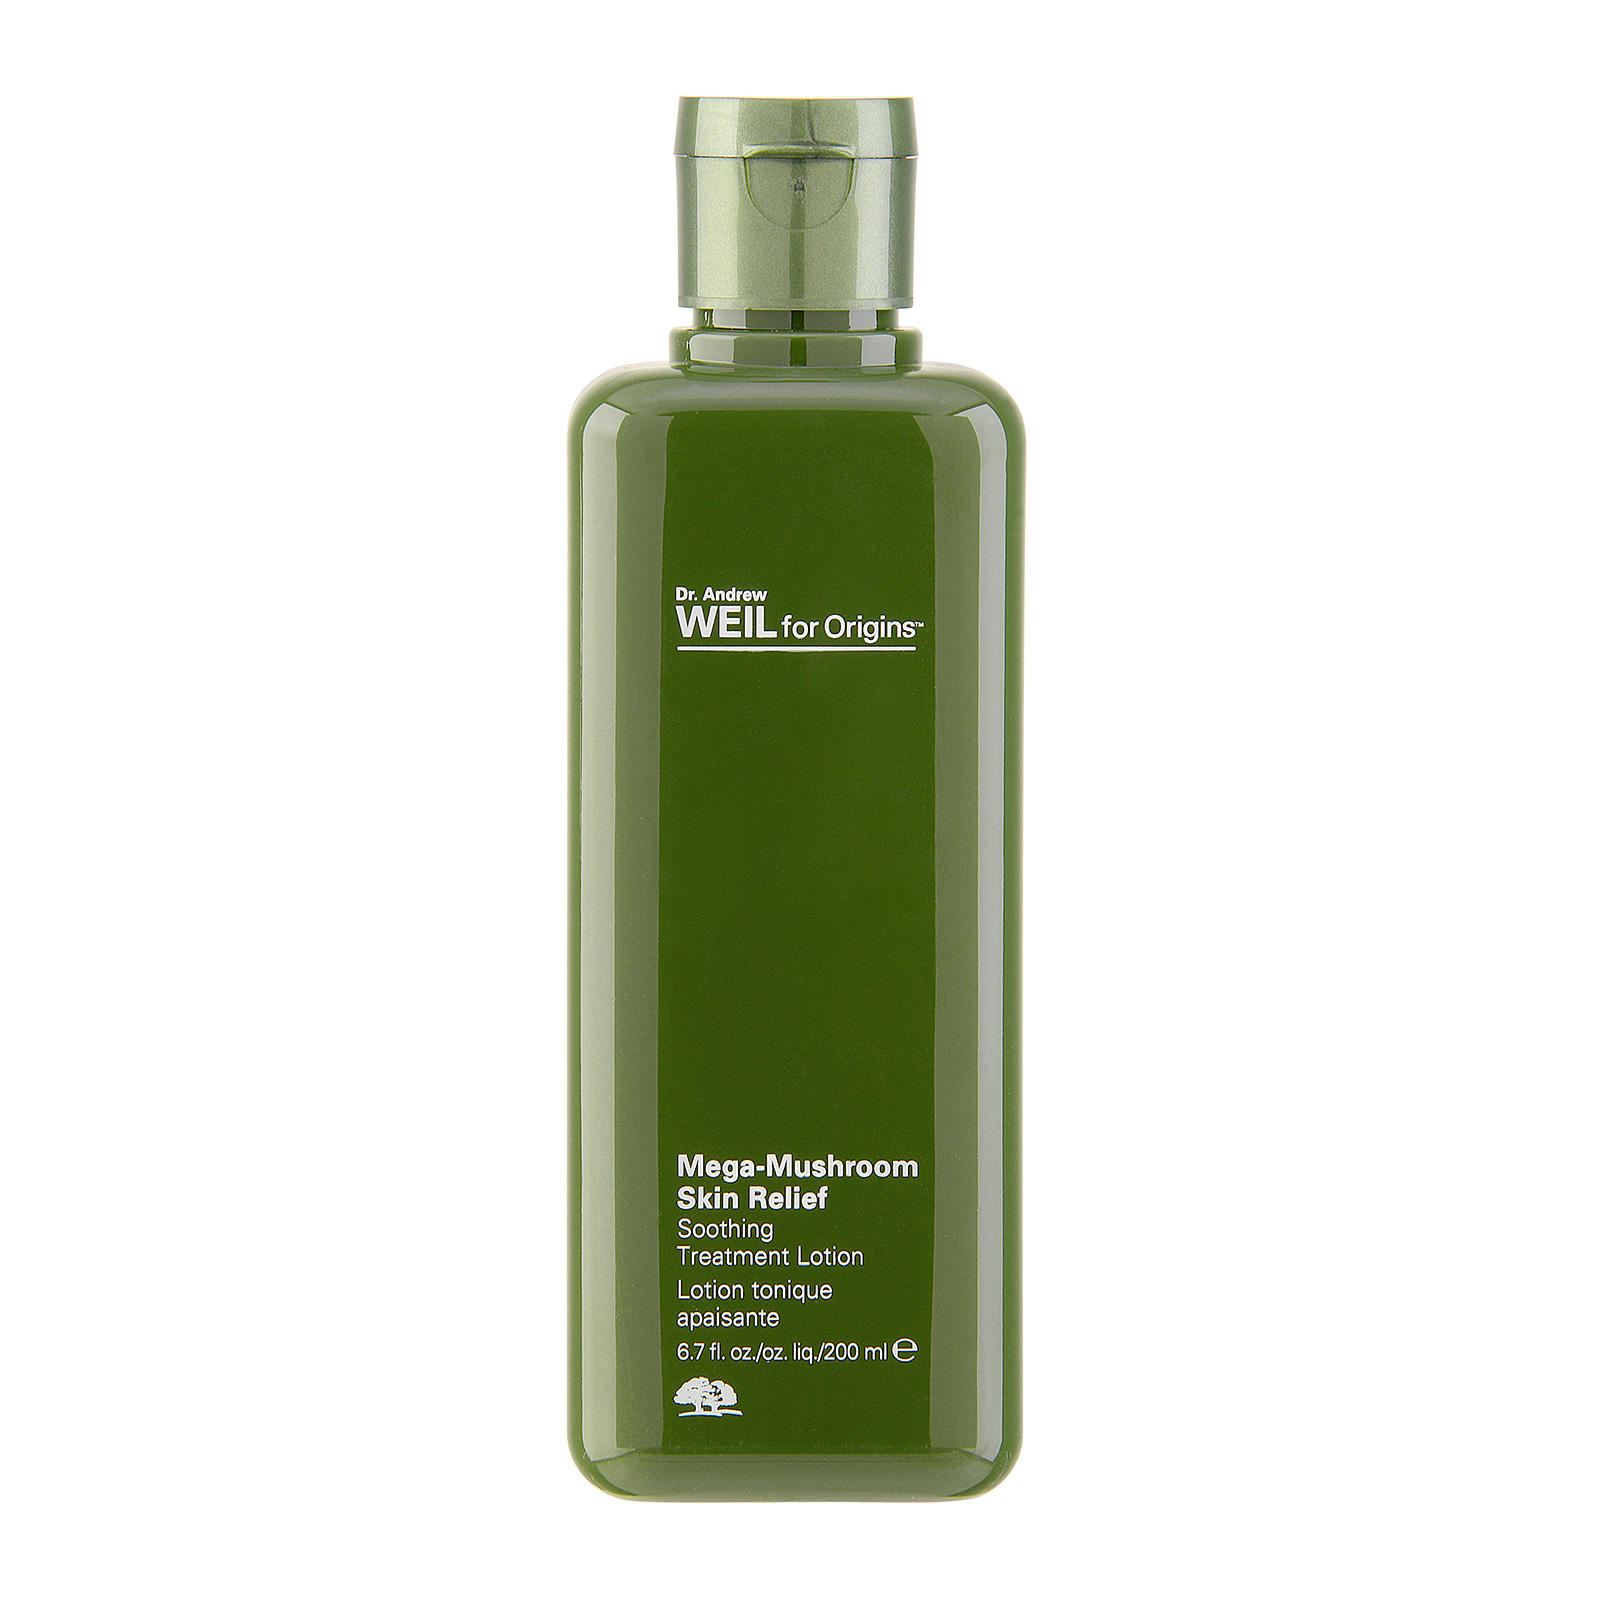 Origins Dr. Andrew Weil Mega-Mushroom Skin Relief Soothing Treatment Lotion 6.7oz, 200ml